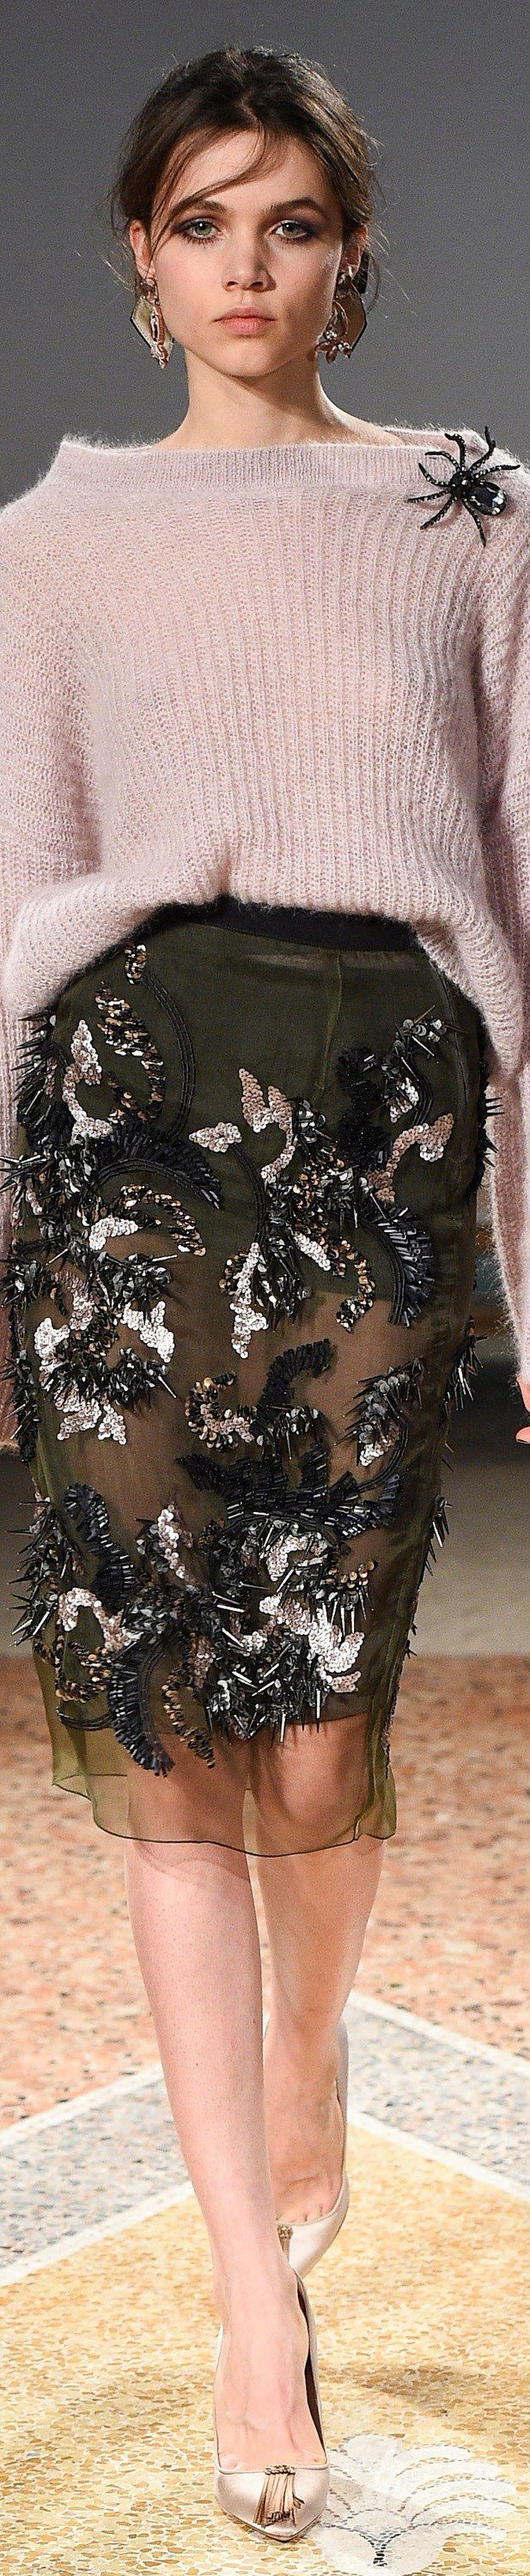 Les Copains - FALL 2016 READY-TO-WEAR